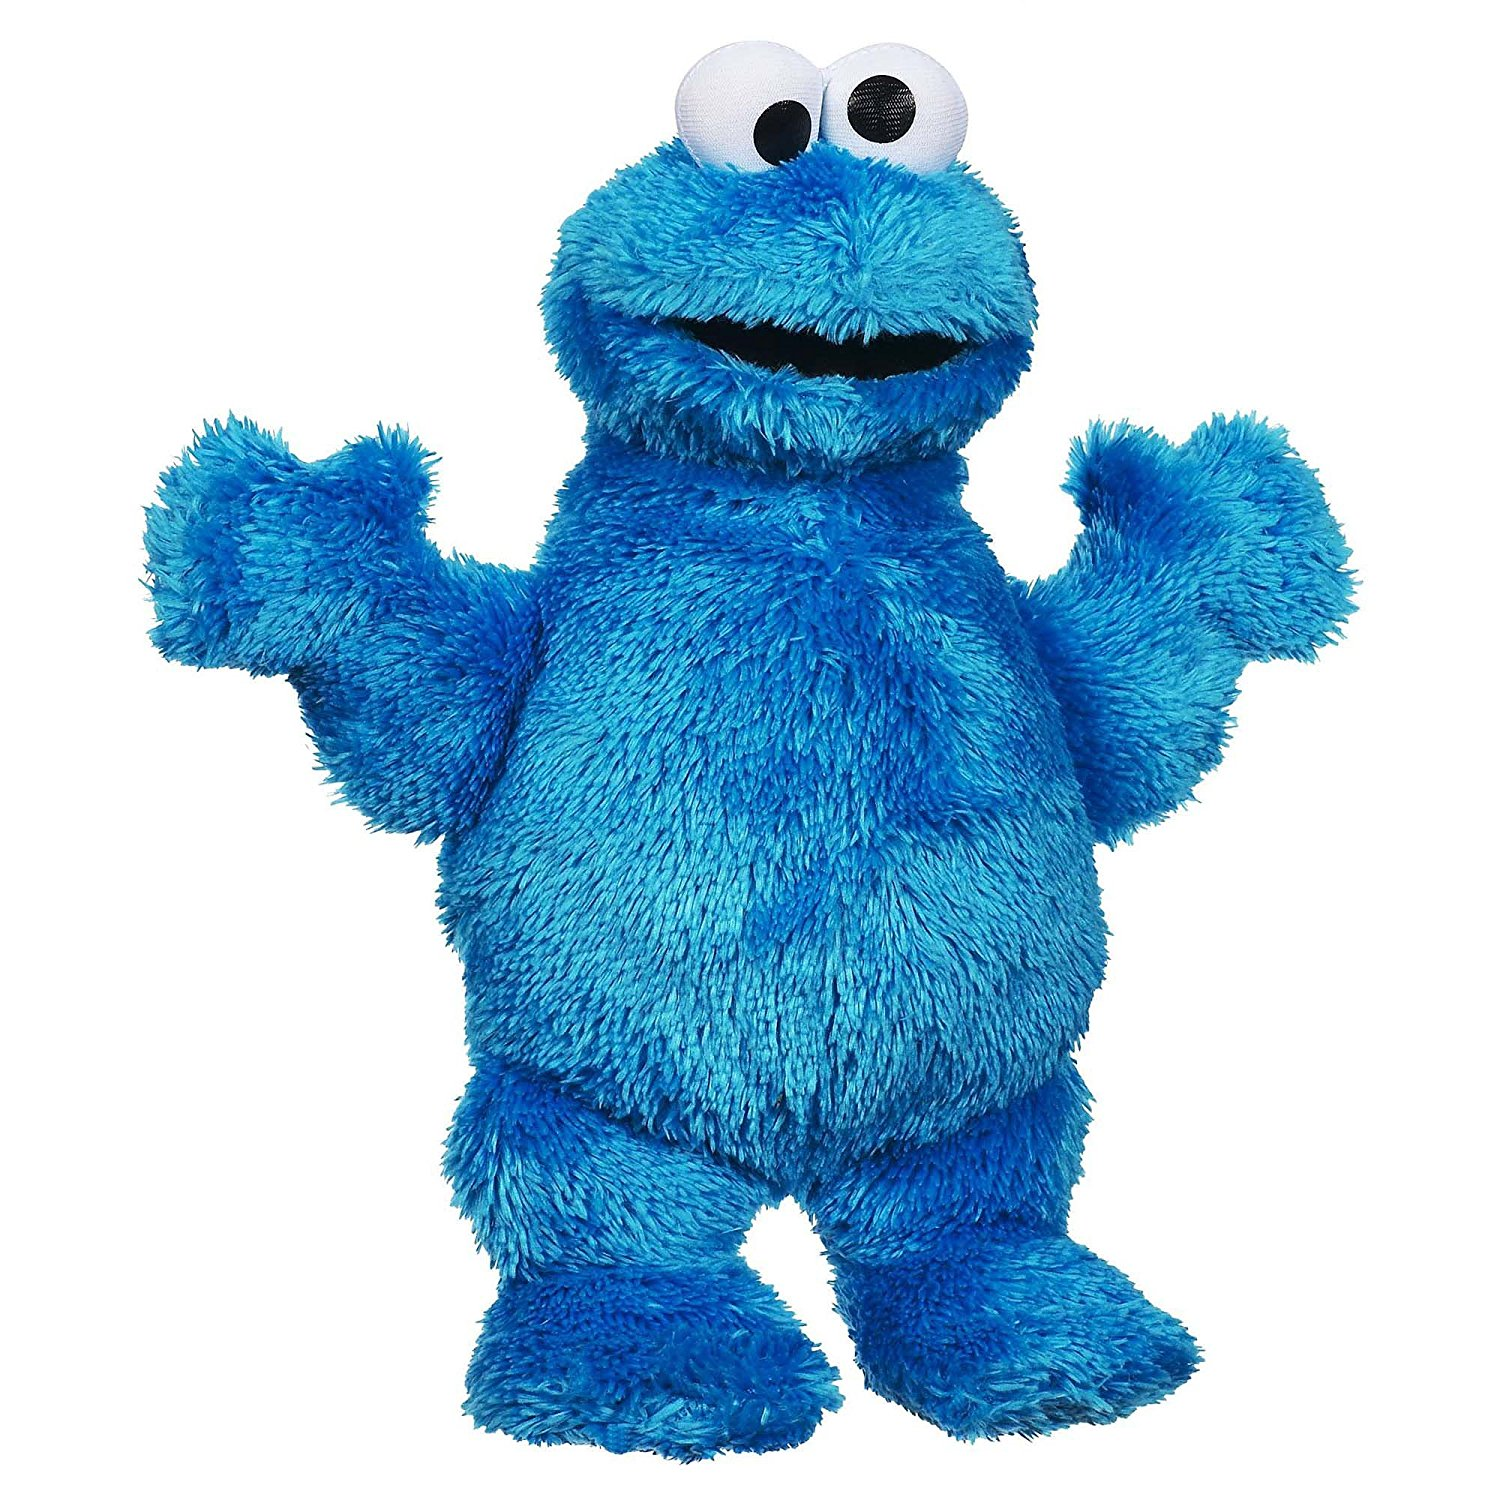 Playskool Let's Cuddle Cookie Monster Plush, Little ones will love to hug and snuggle their favorite Sesame... by